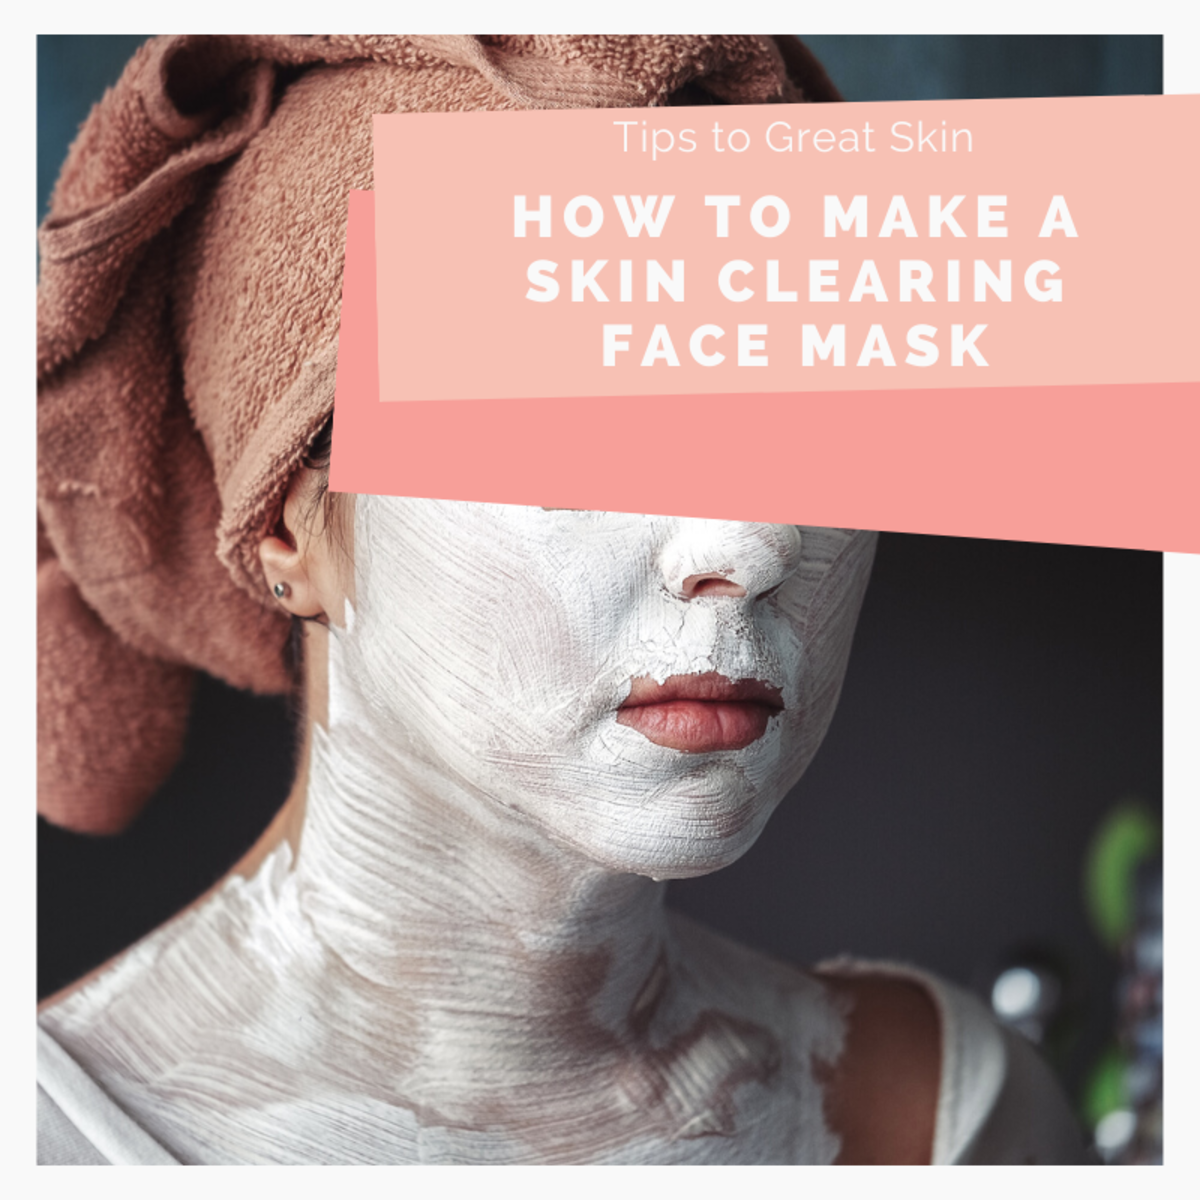 There are so many options for making your own skin clearing face mask. Learn about them in this article.